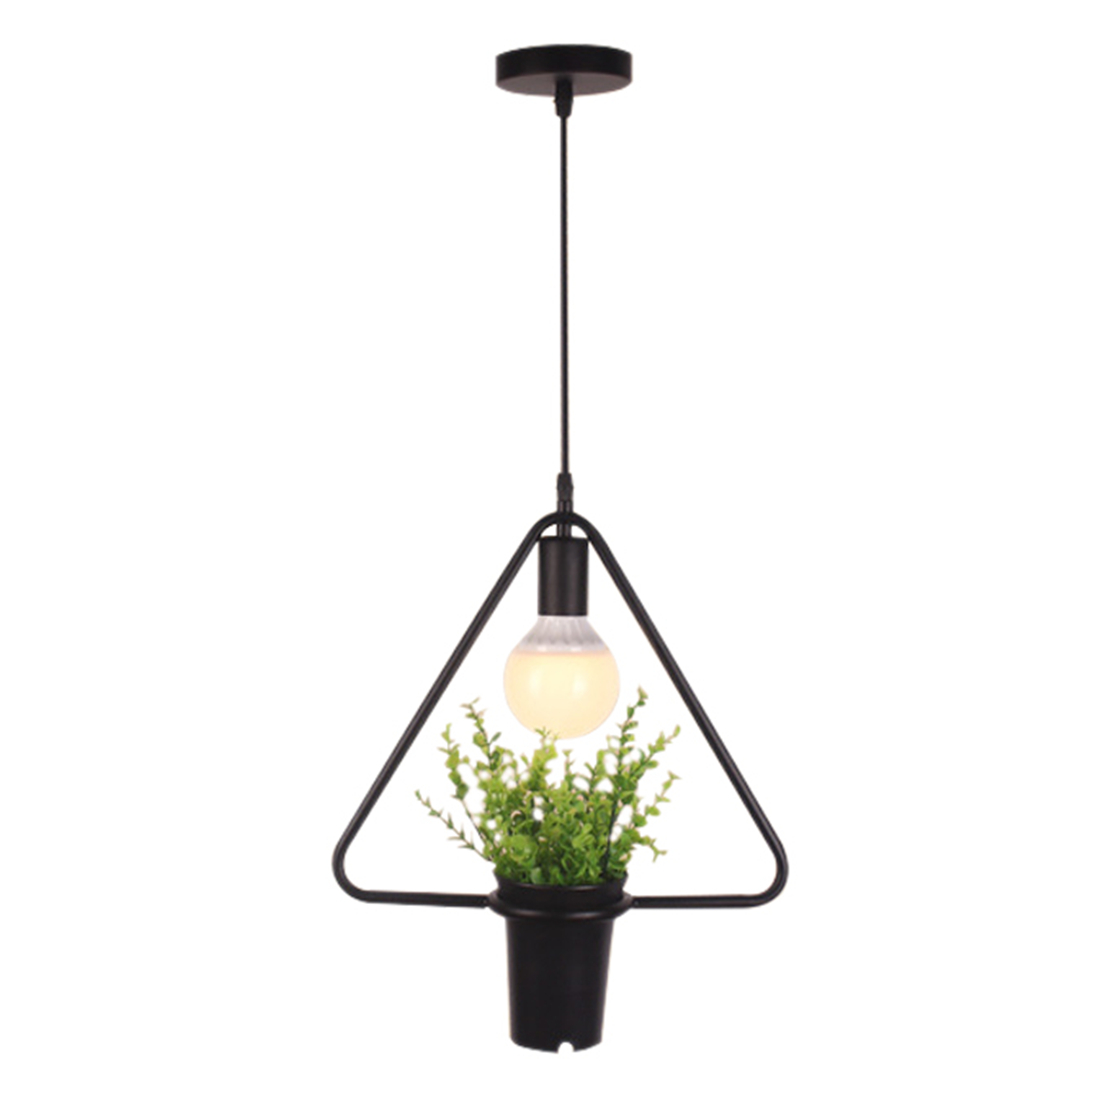 Wish Black Triangular Green Plant Hanging Lamp Retro